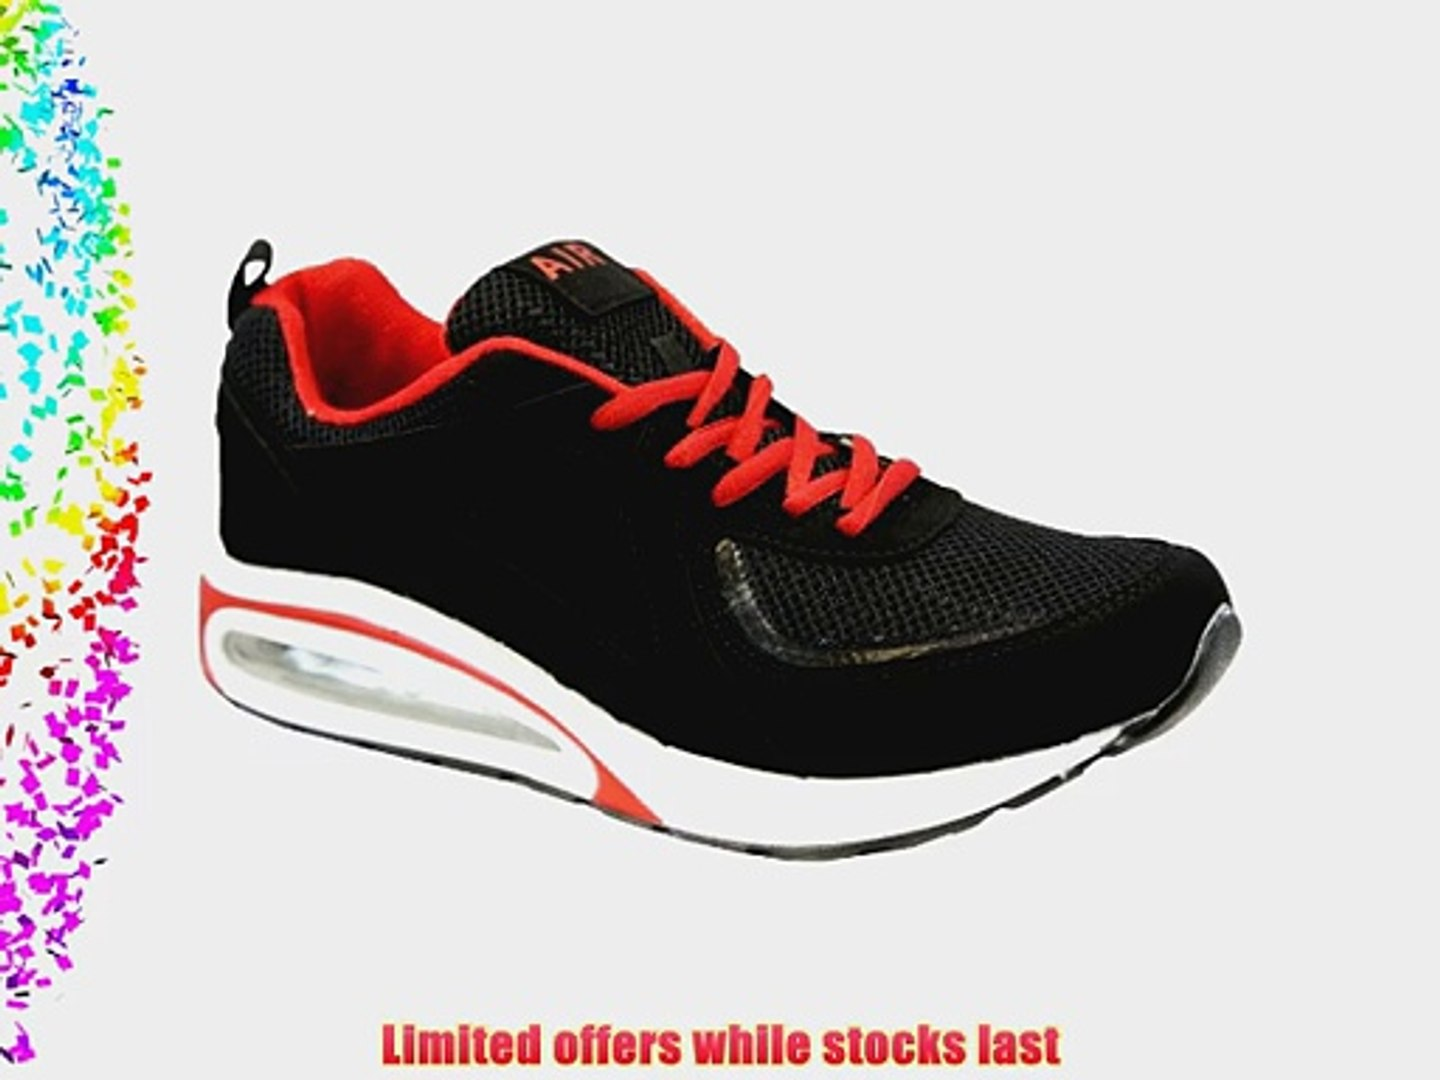 MENS RUNNING TRAINERS CASUAL LACE UP RUNNING GYM WALKING BOYS SPORTS SHOES SIZE (10 BLACK RED)